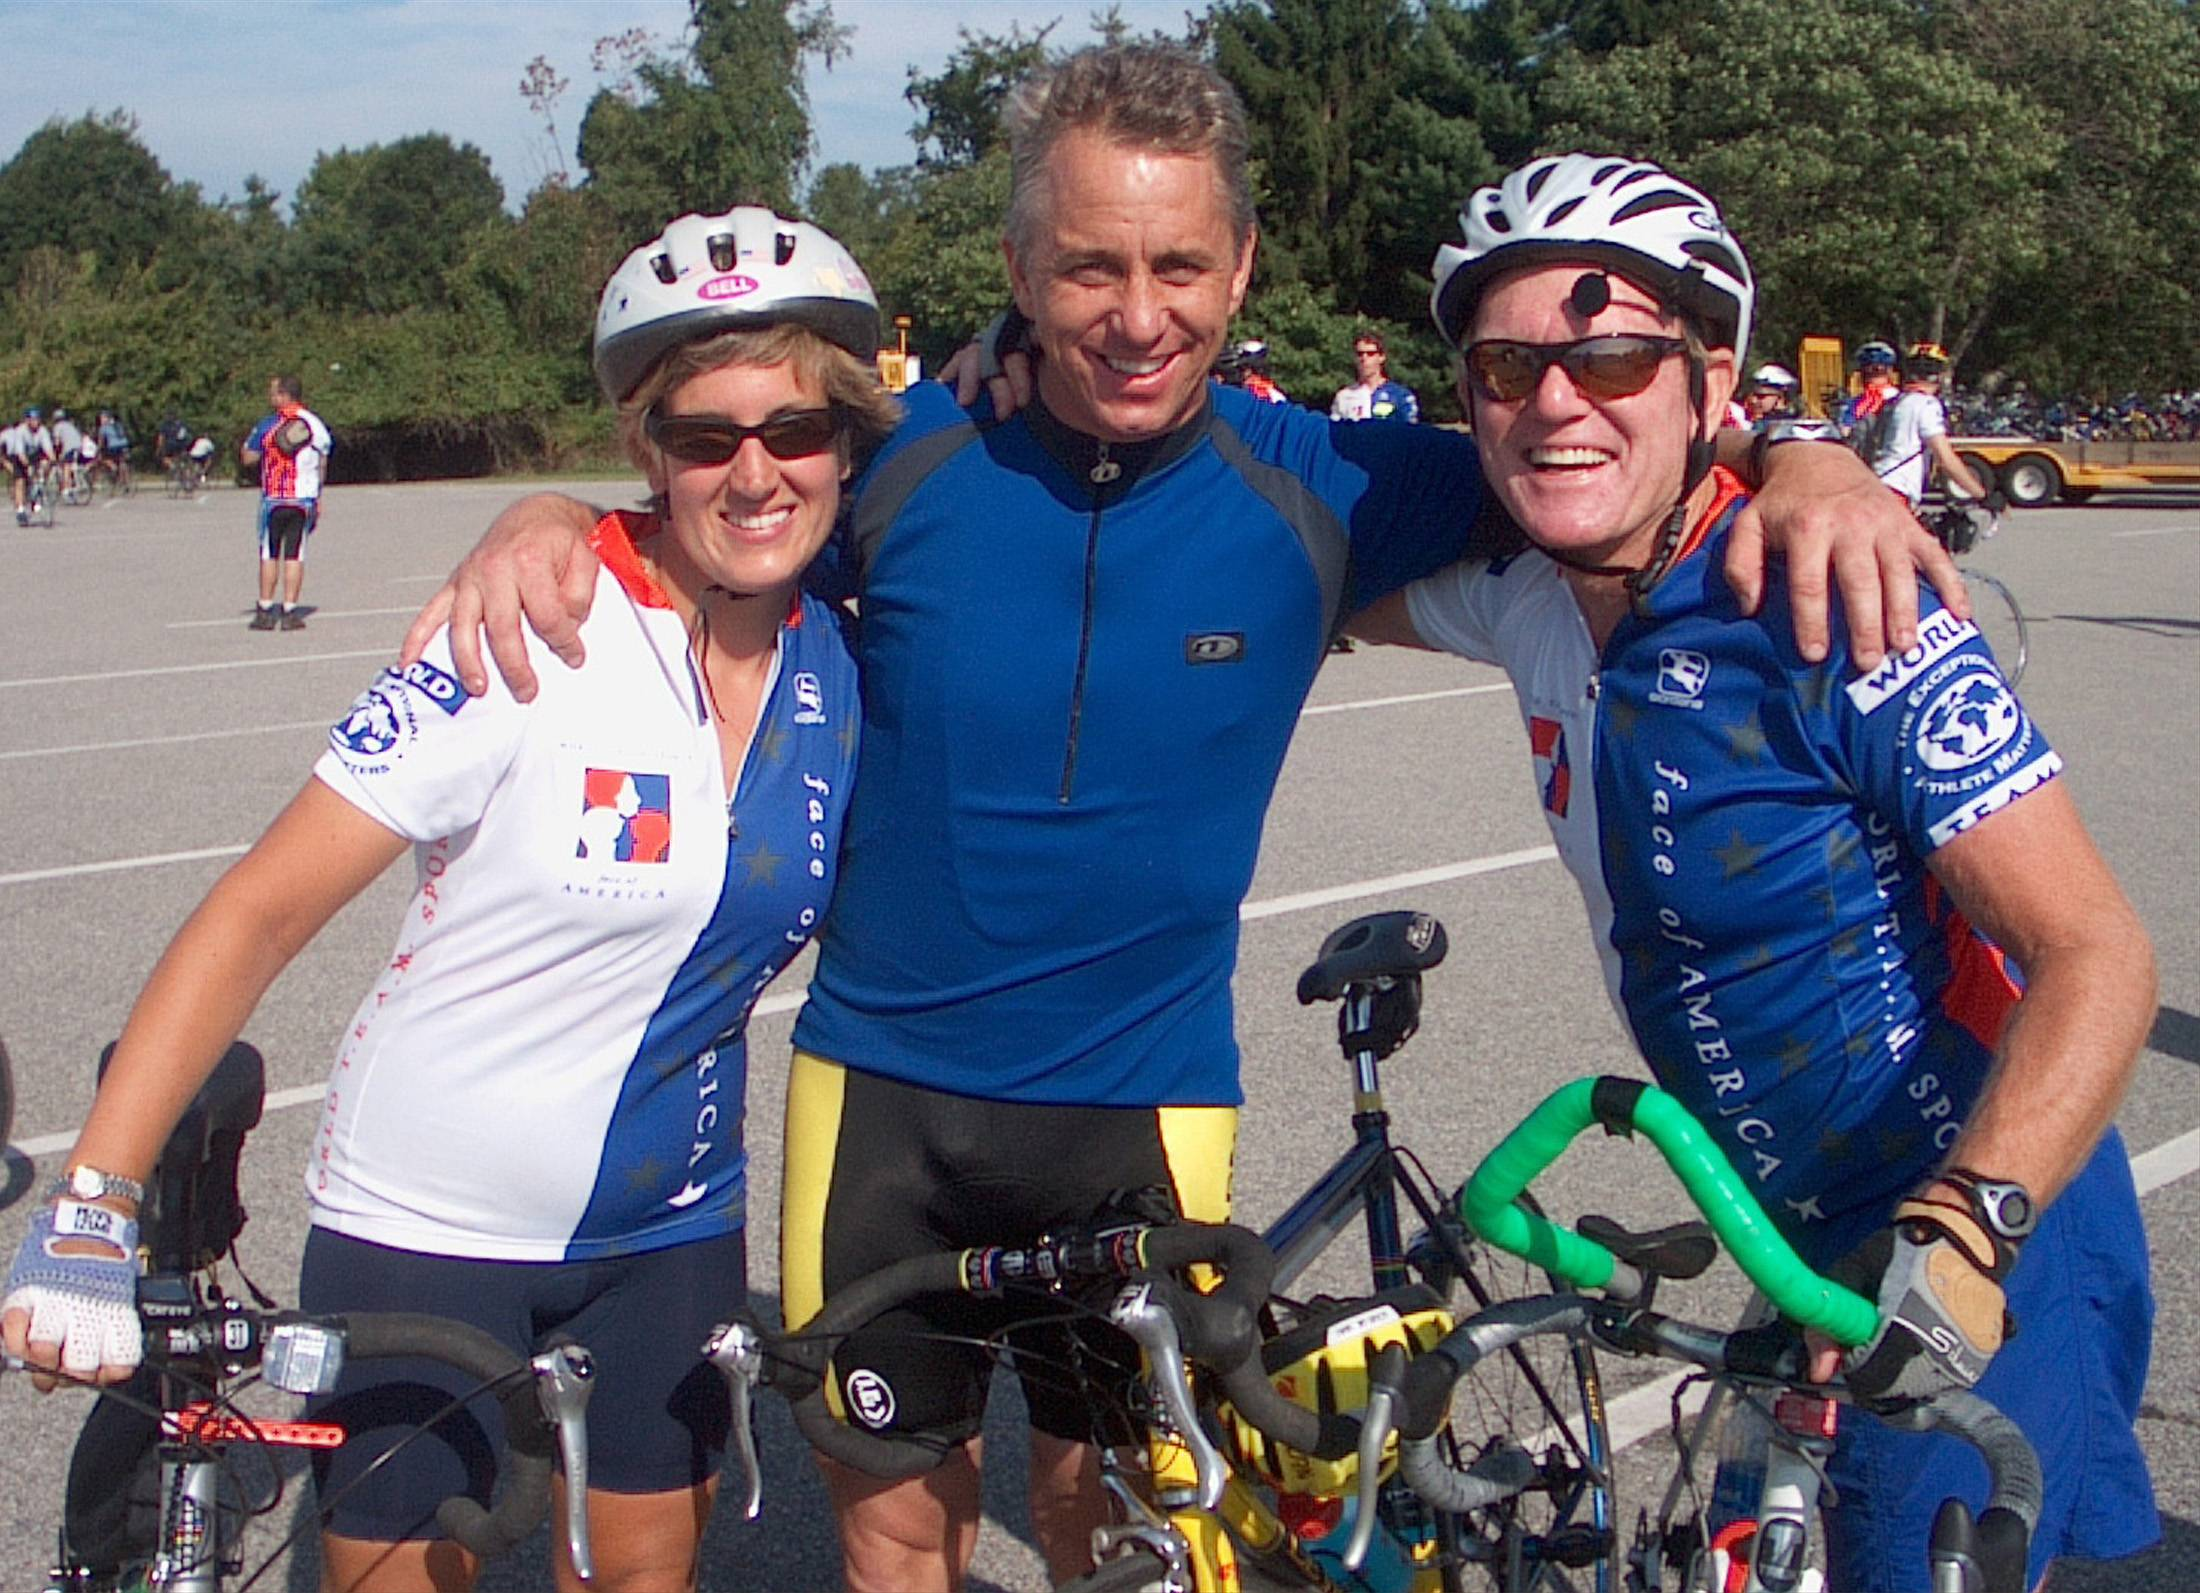 Bob Lee, right, has made three cross-country bike rides to raise money for charity. Here he and fellow Barrington resident Amy Kenrich take a break from one of the rides to meet with Tour de France champion Greg LeMond.